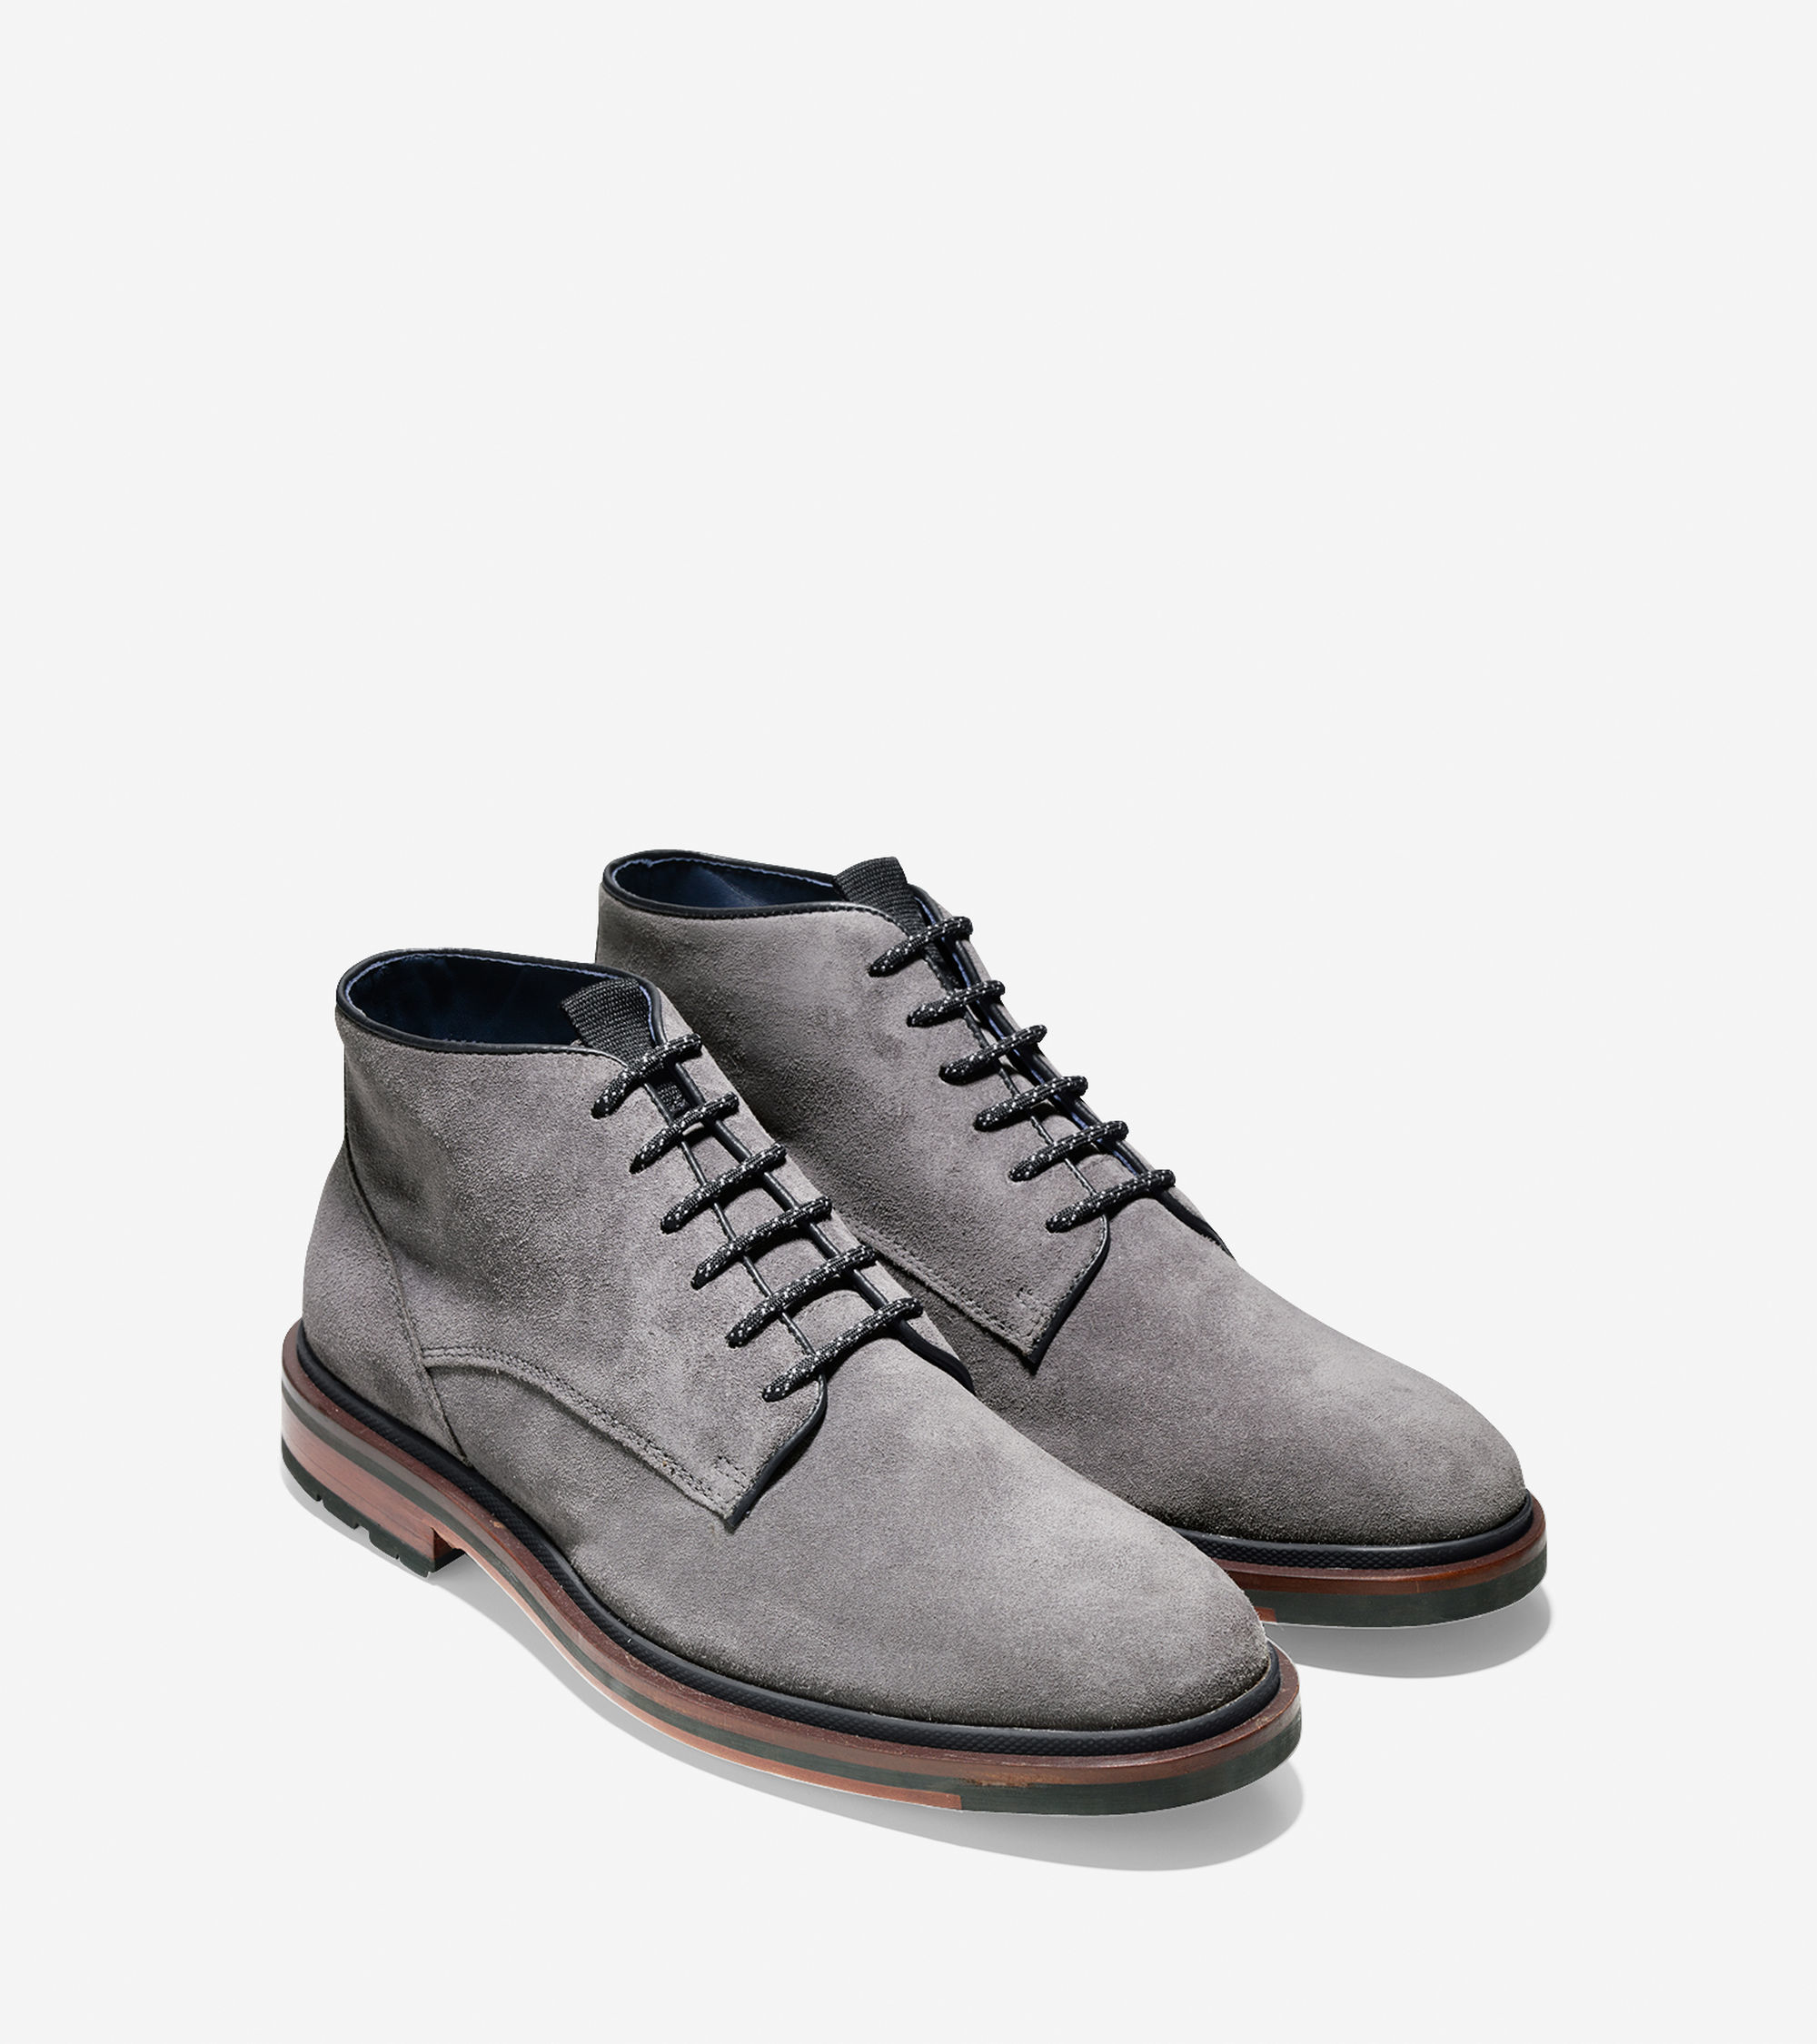 cole haan cranston suede chukka boots in gray for lyst